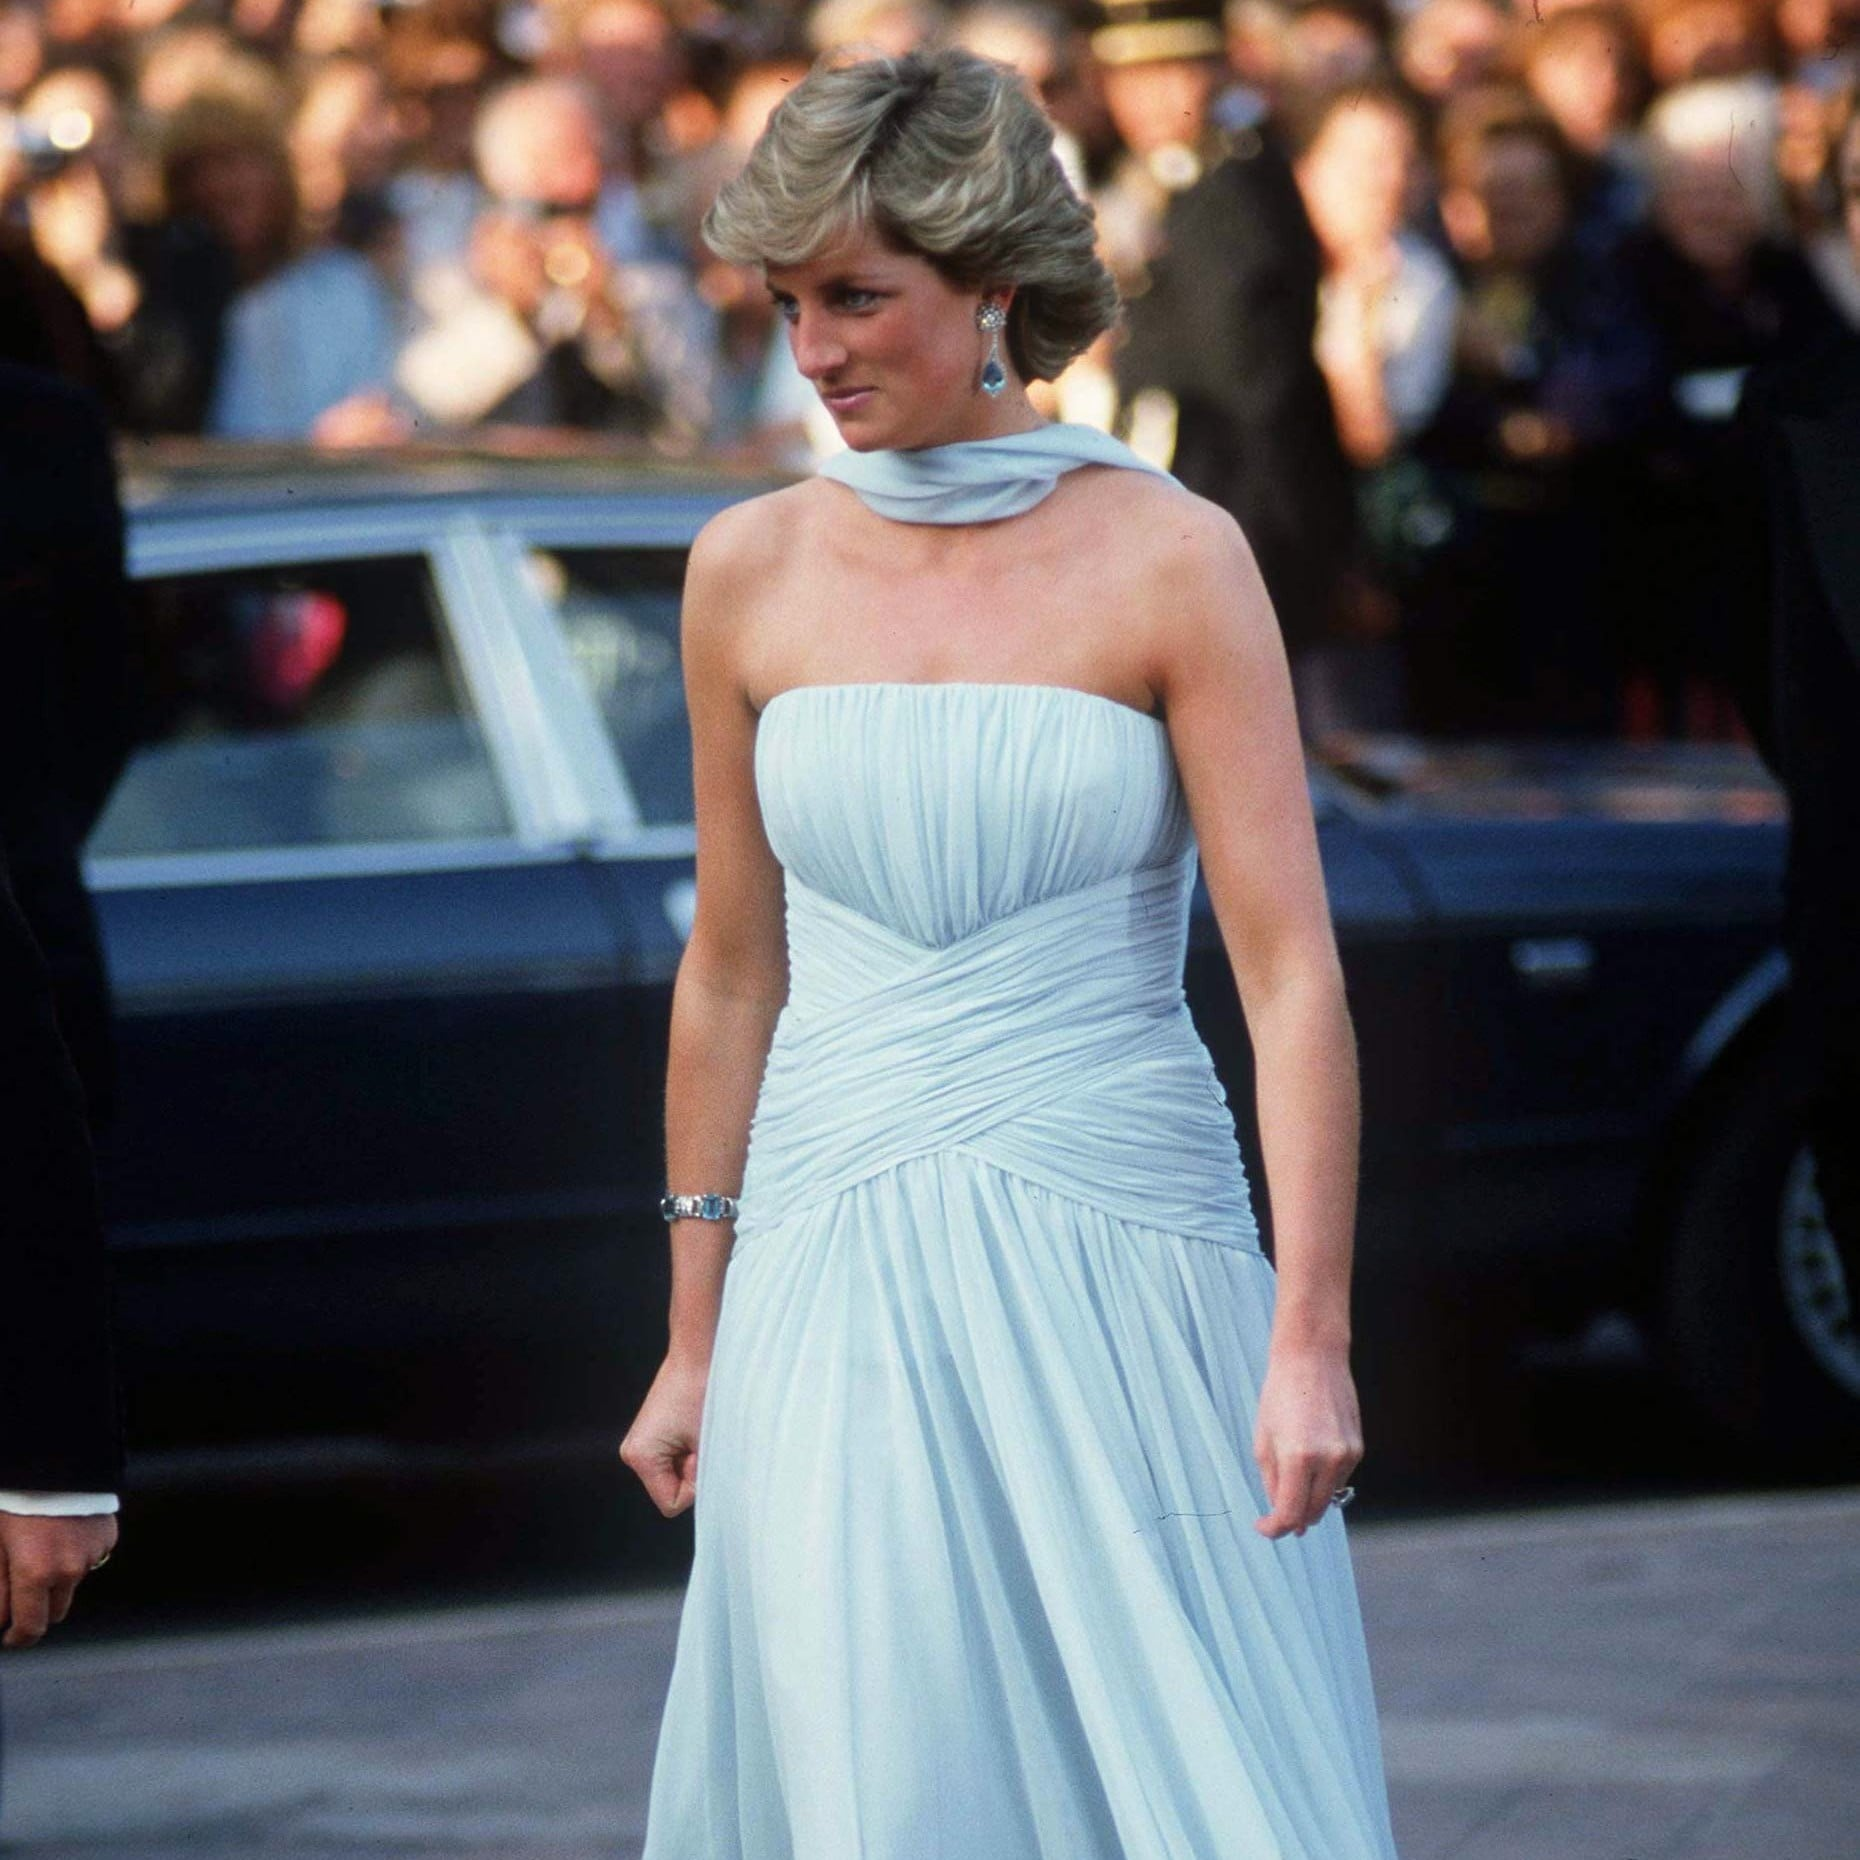 Princess Diana Cannes Film Festival Dresses | POPSUGAR Fashion ...